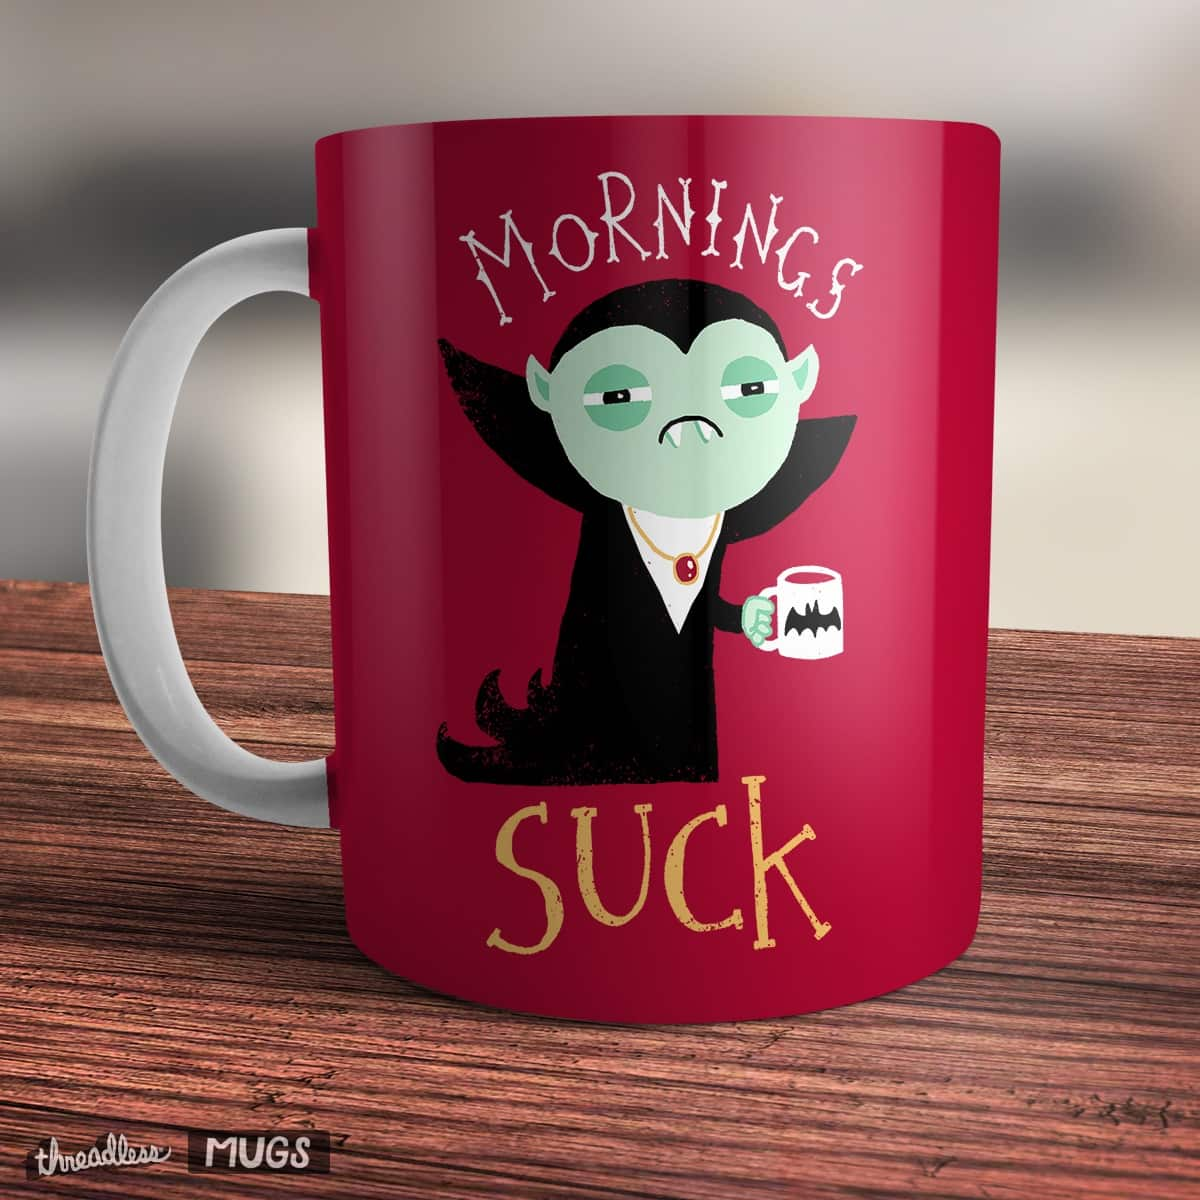 Mornings Suck by DinoMike on Threadless